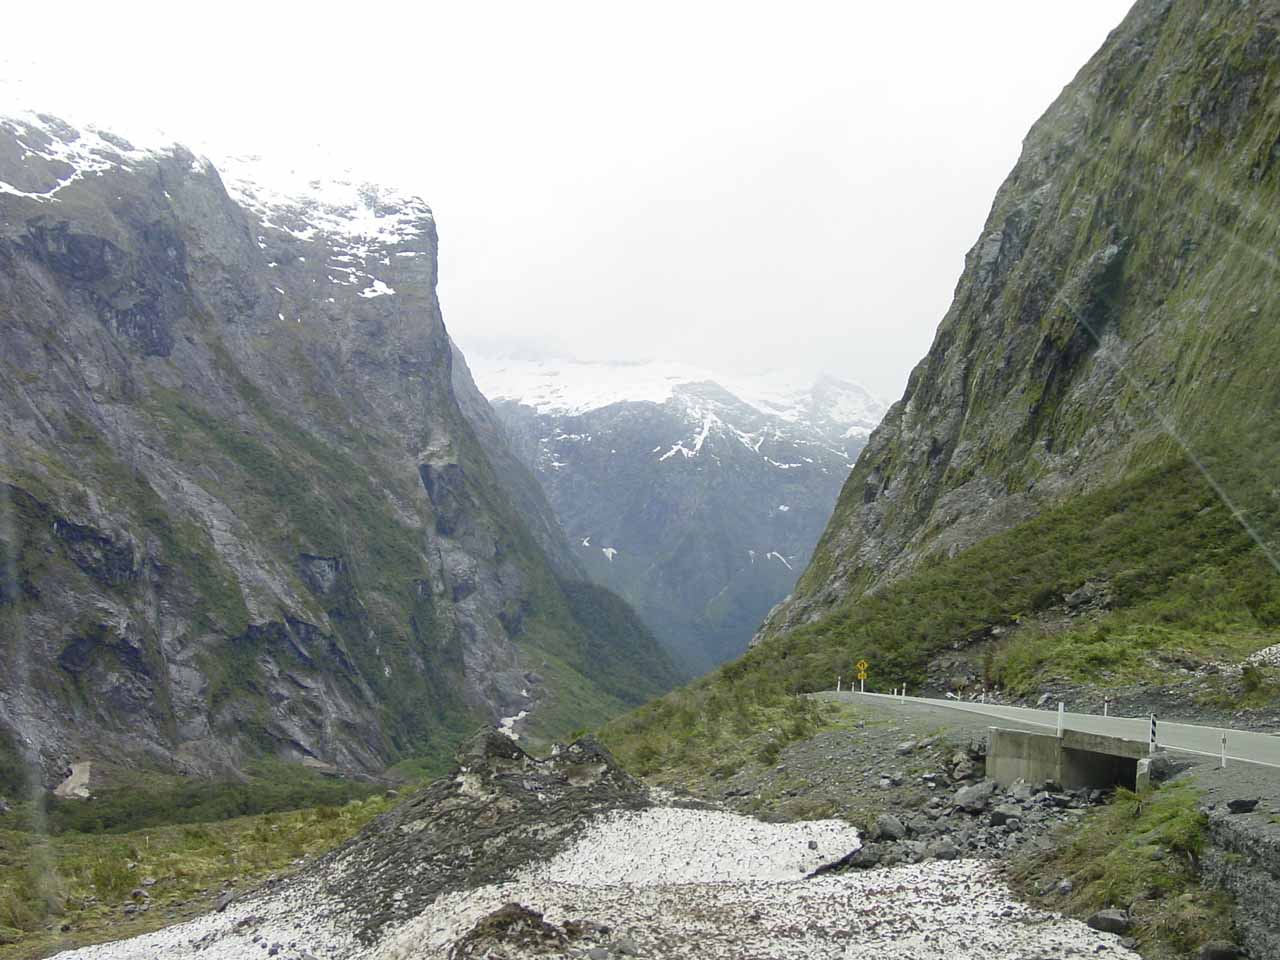 This was the view that greeted us when we left the west side of the Homer Tunnel